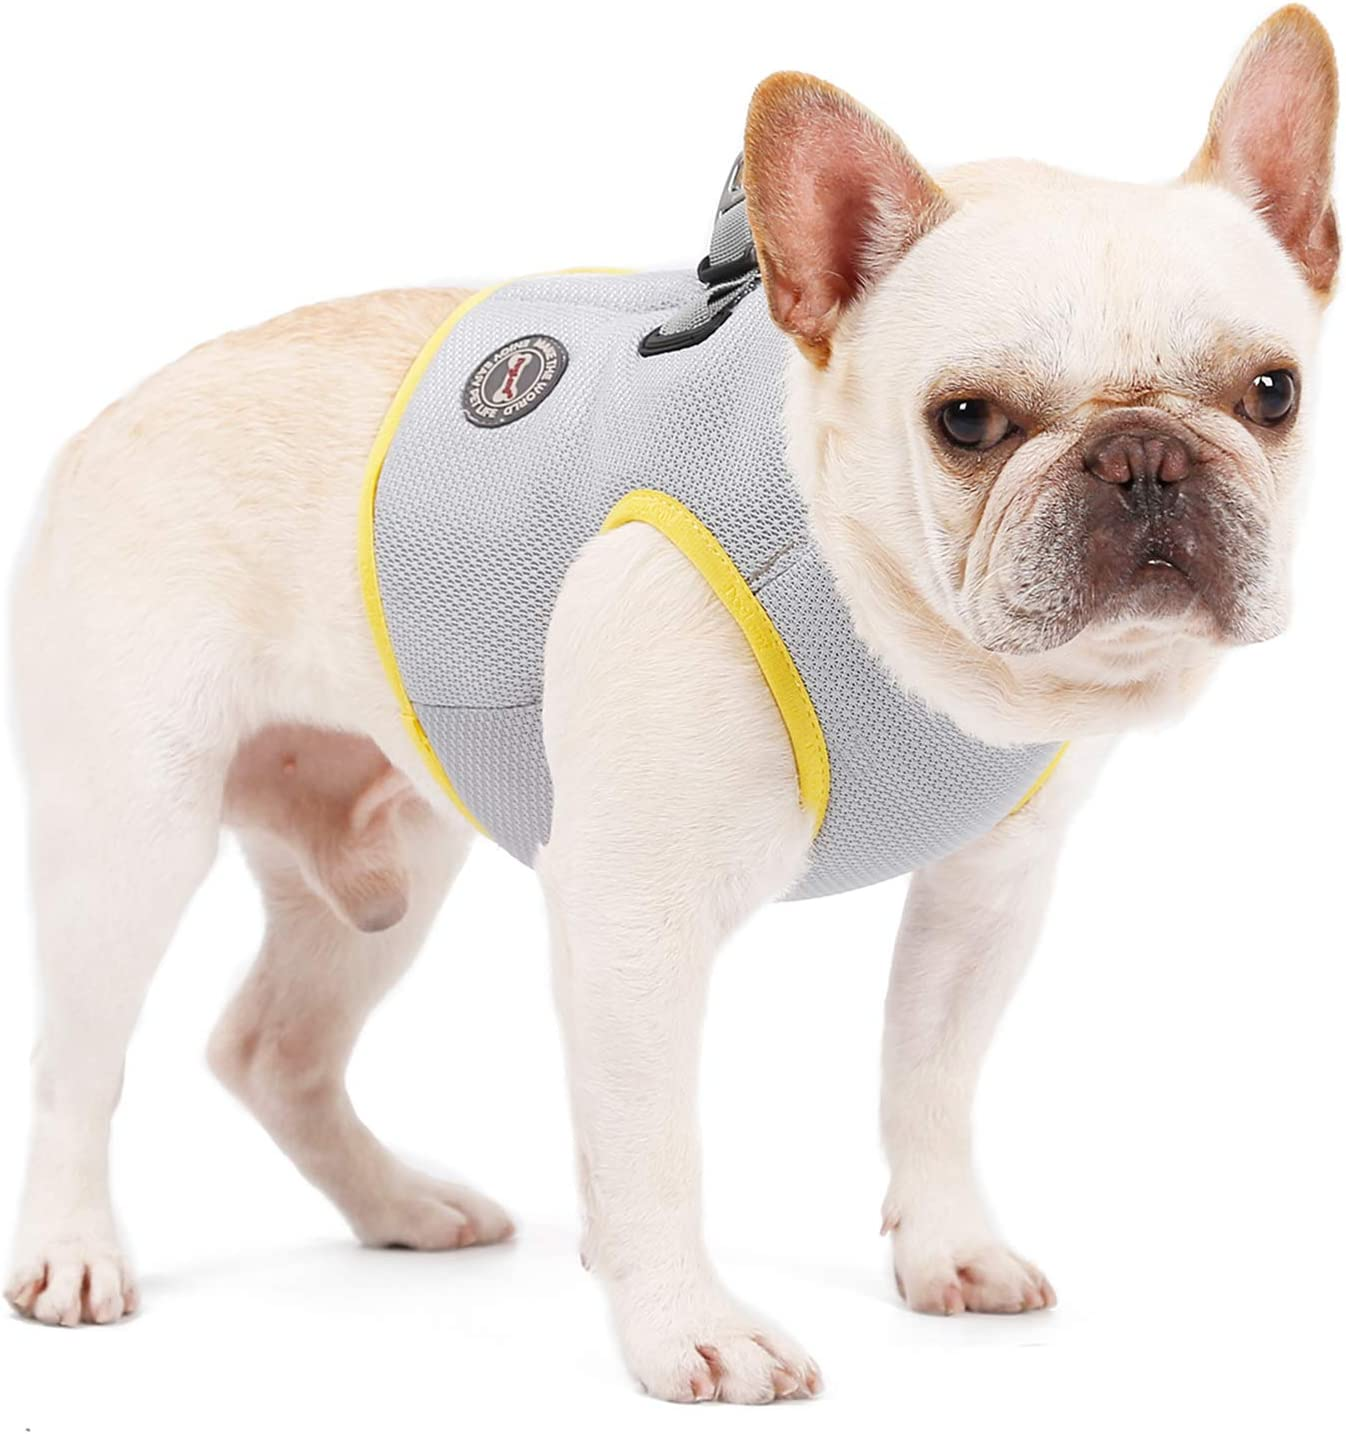 CONTACTS Cooling Vest Harness for Dogs, Breathable Dog Cooling Coat for Outdoor Adventure Training Walking